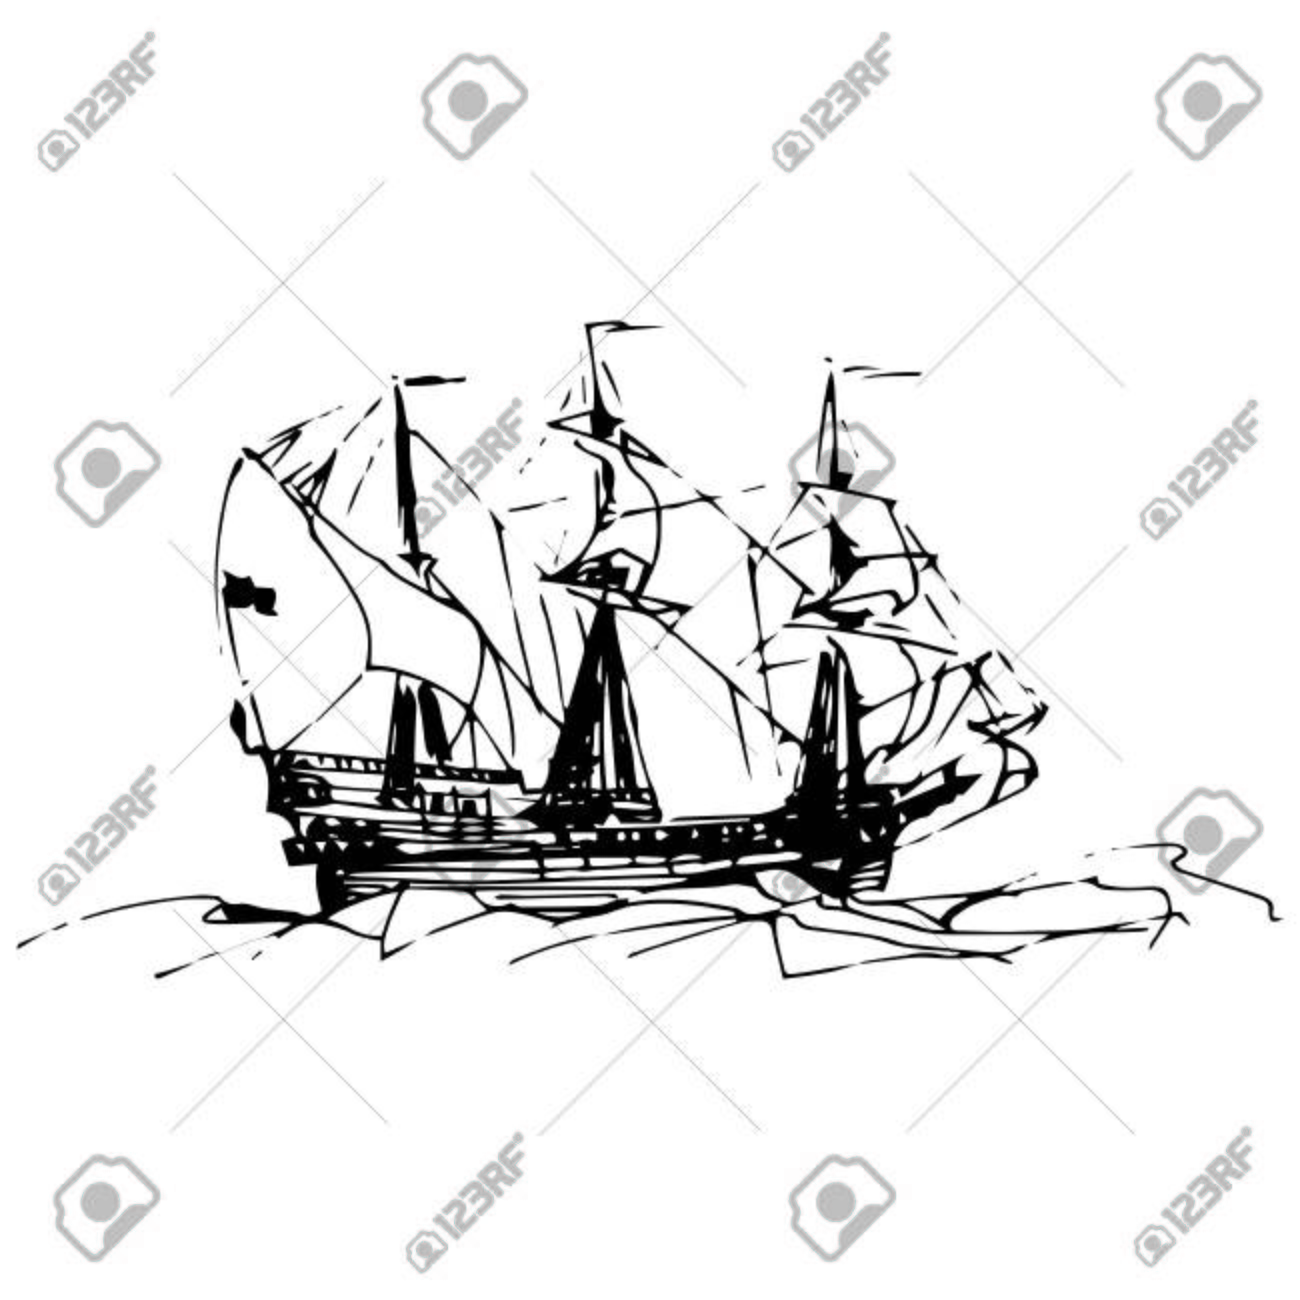 1300x1300 Sailing Galleon Ship In The Ocean In Ink Line Style. Vector Hand